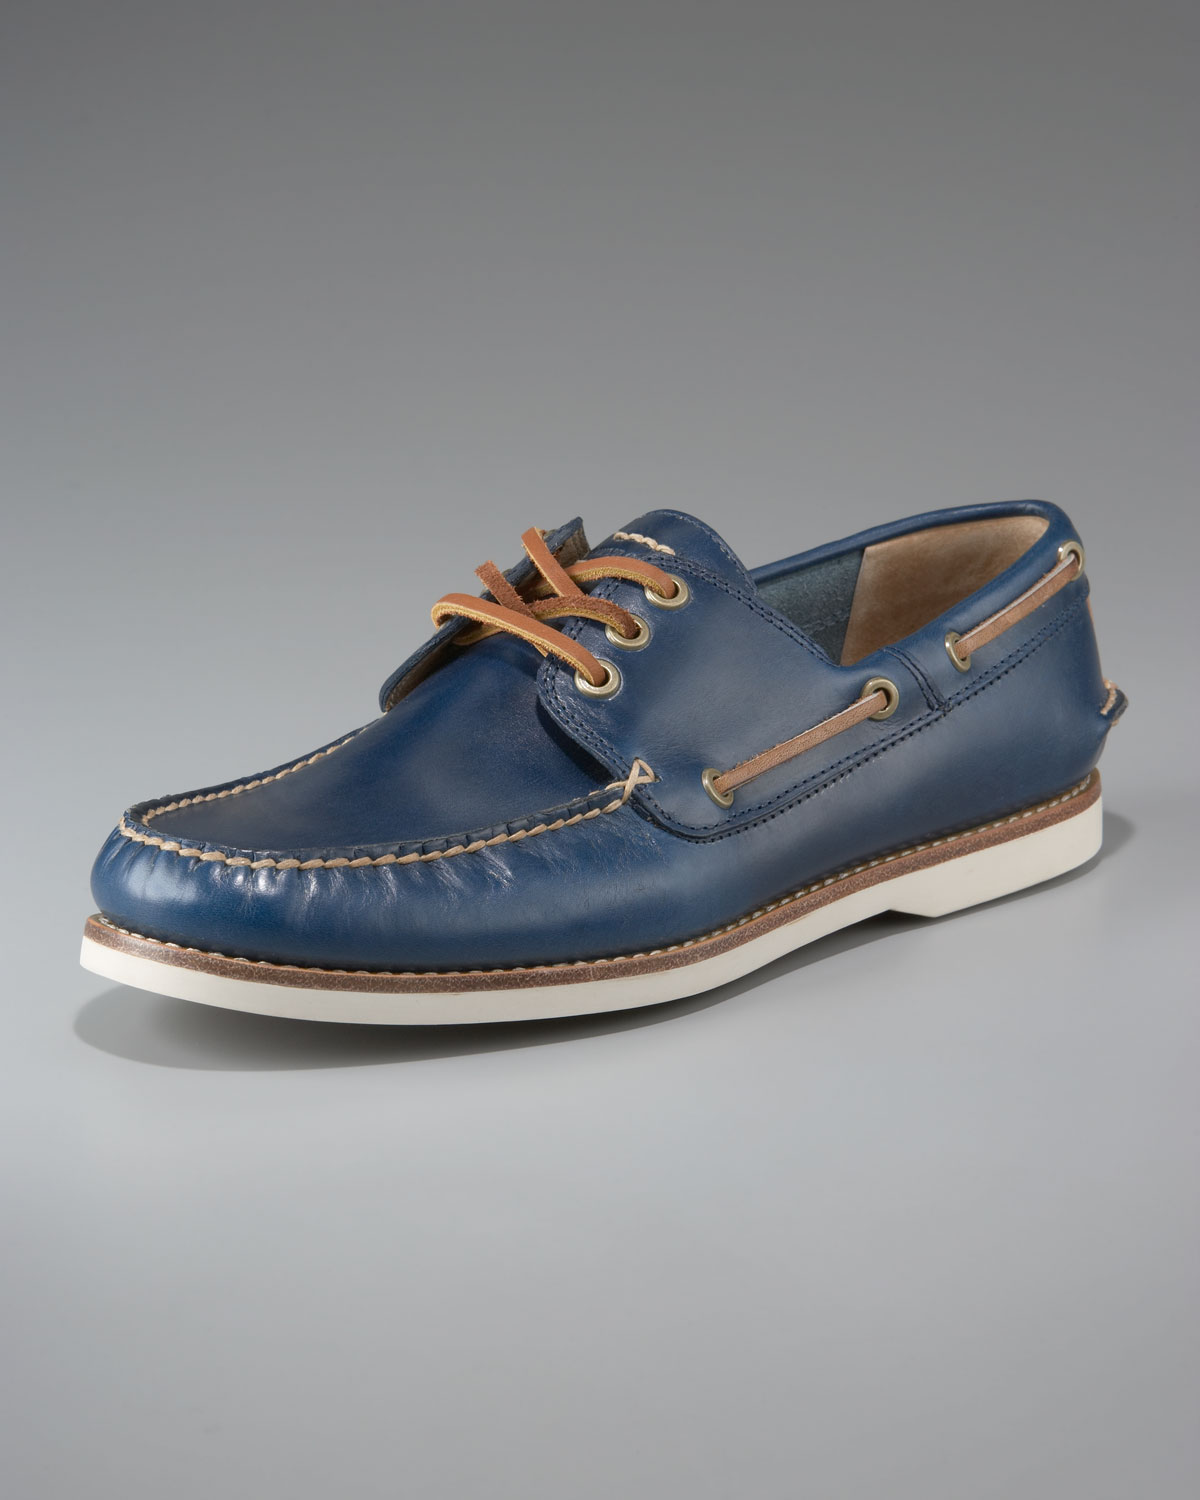 Frye Boat Shoes Review